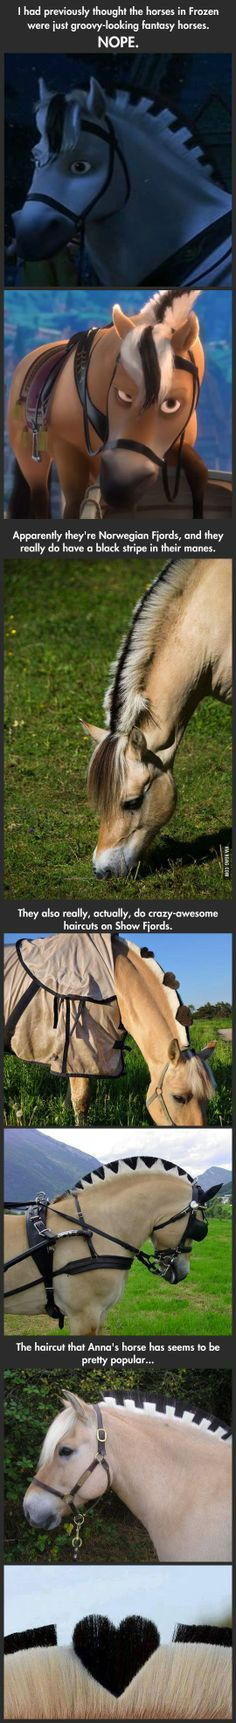 Frozen horses in real life